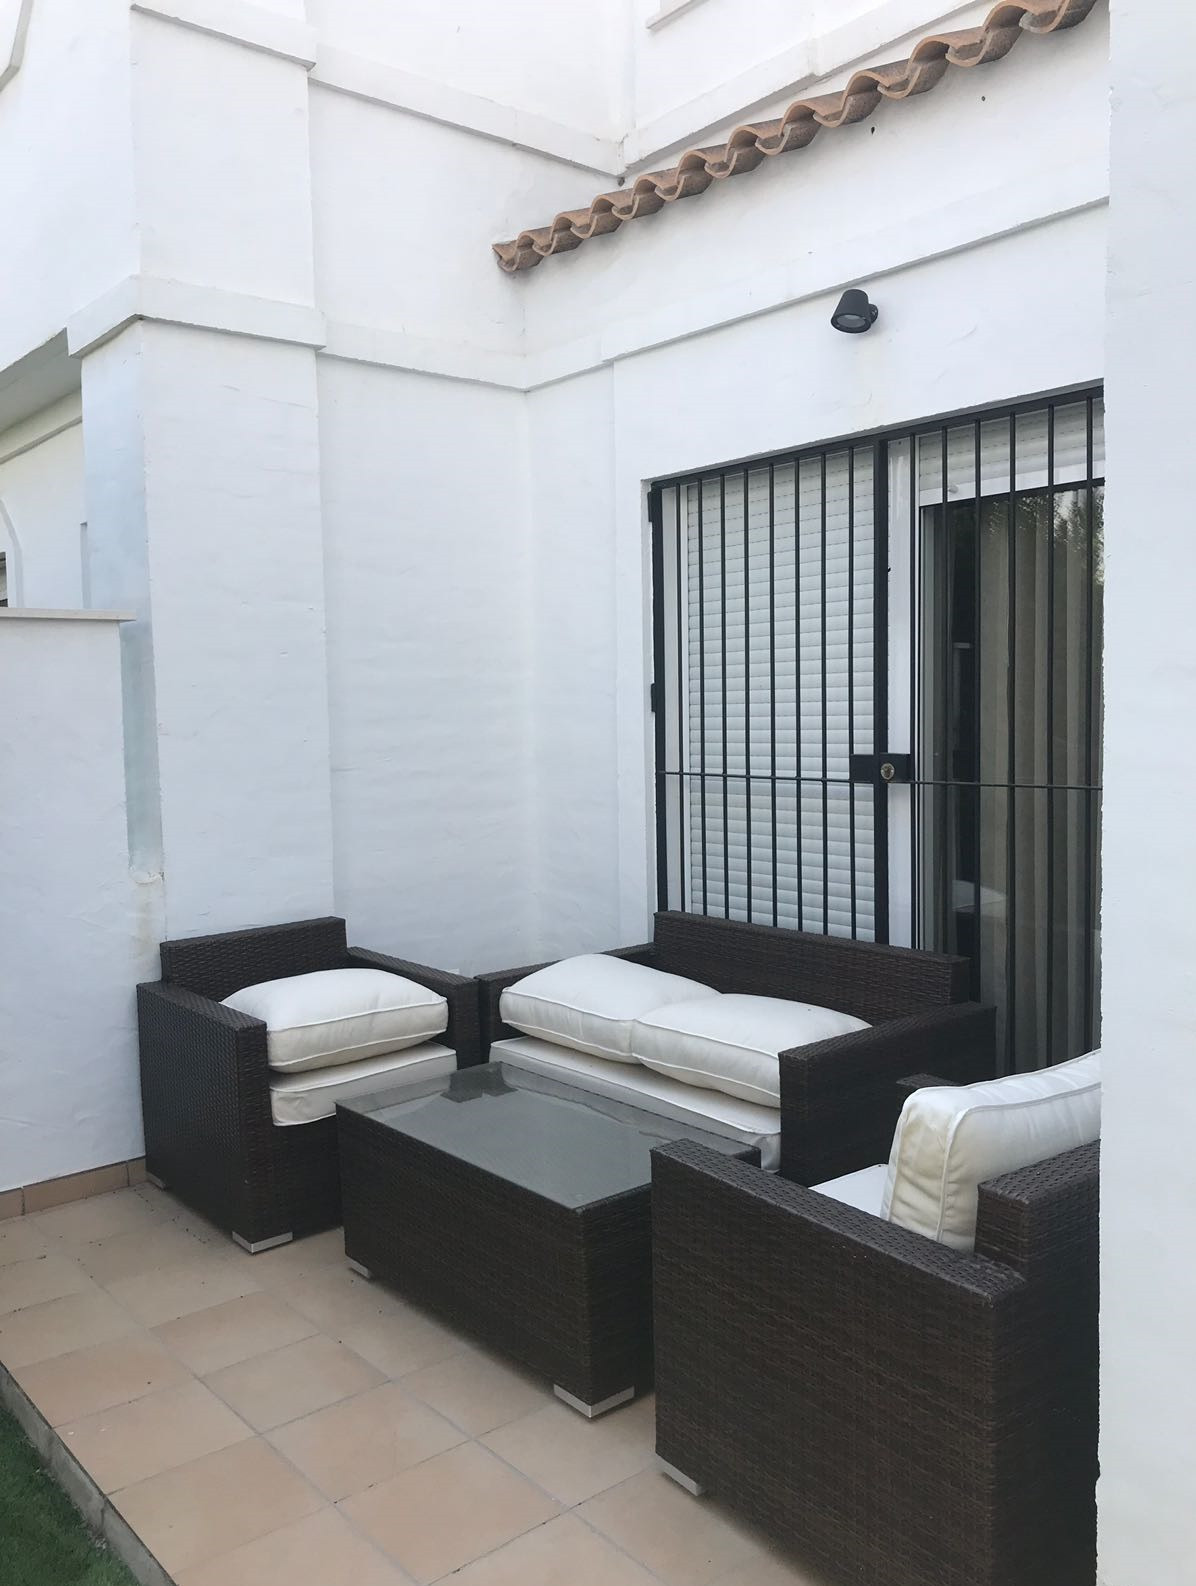 Townhouse Terraced in Puerto Banús, Costa del Sol